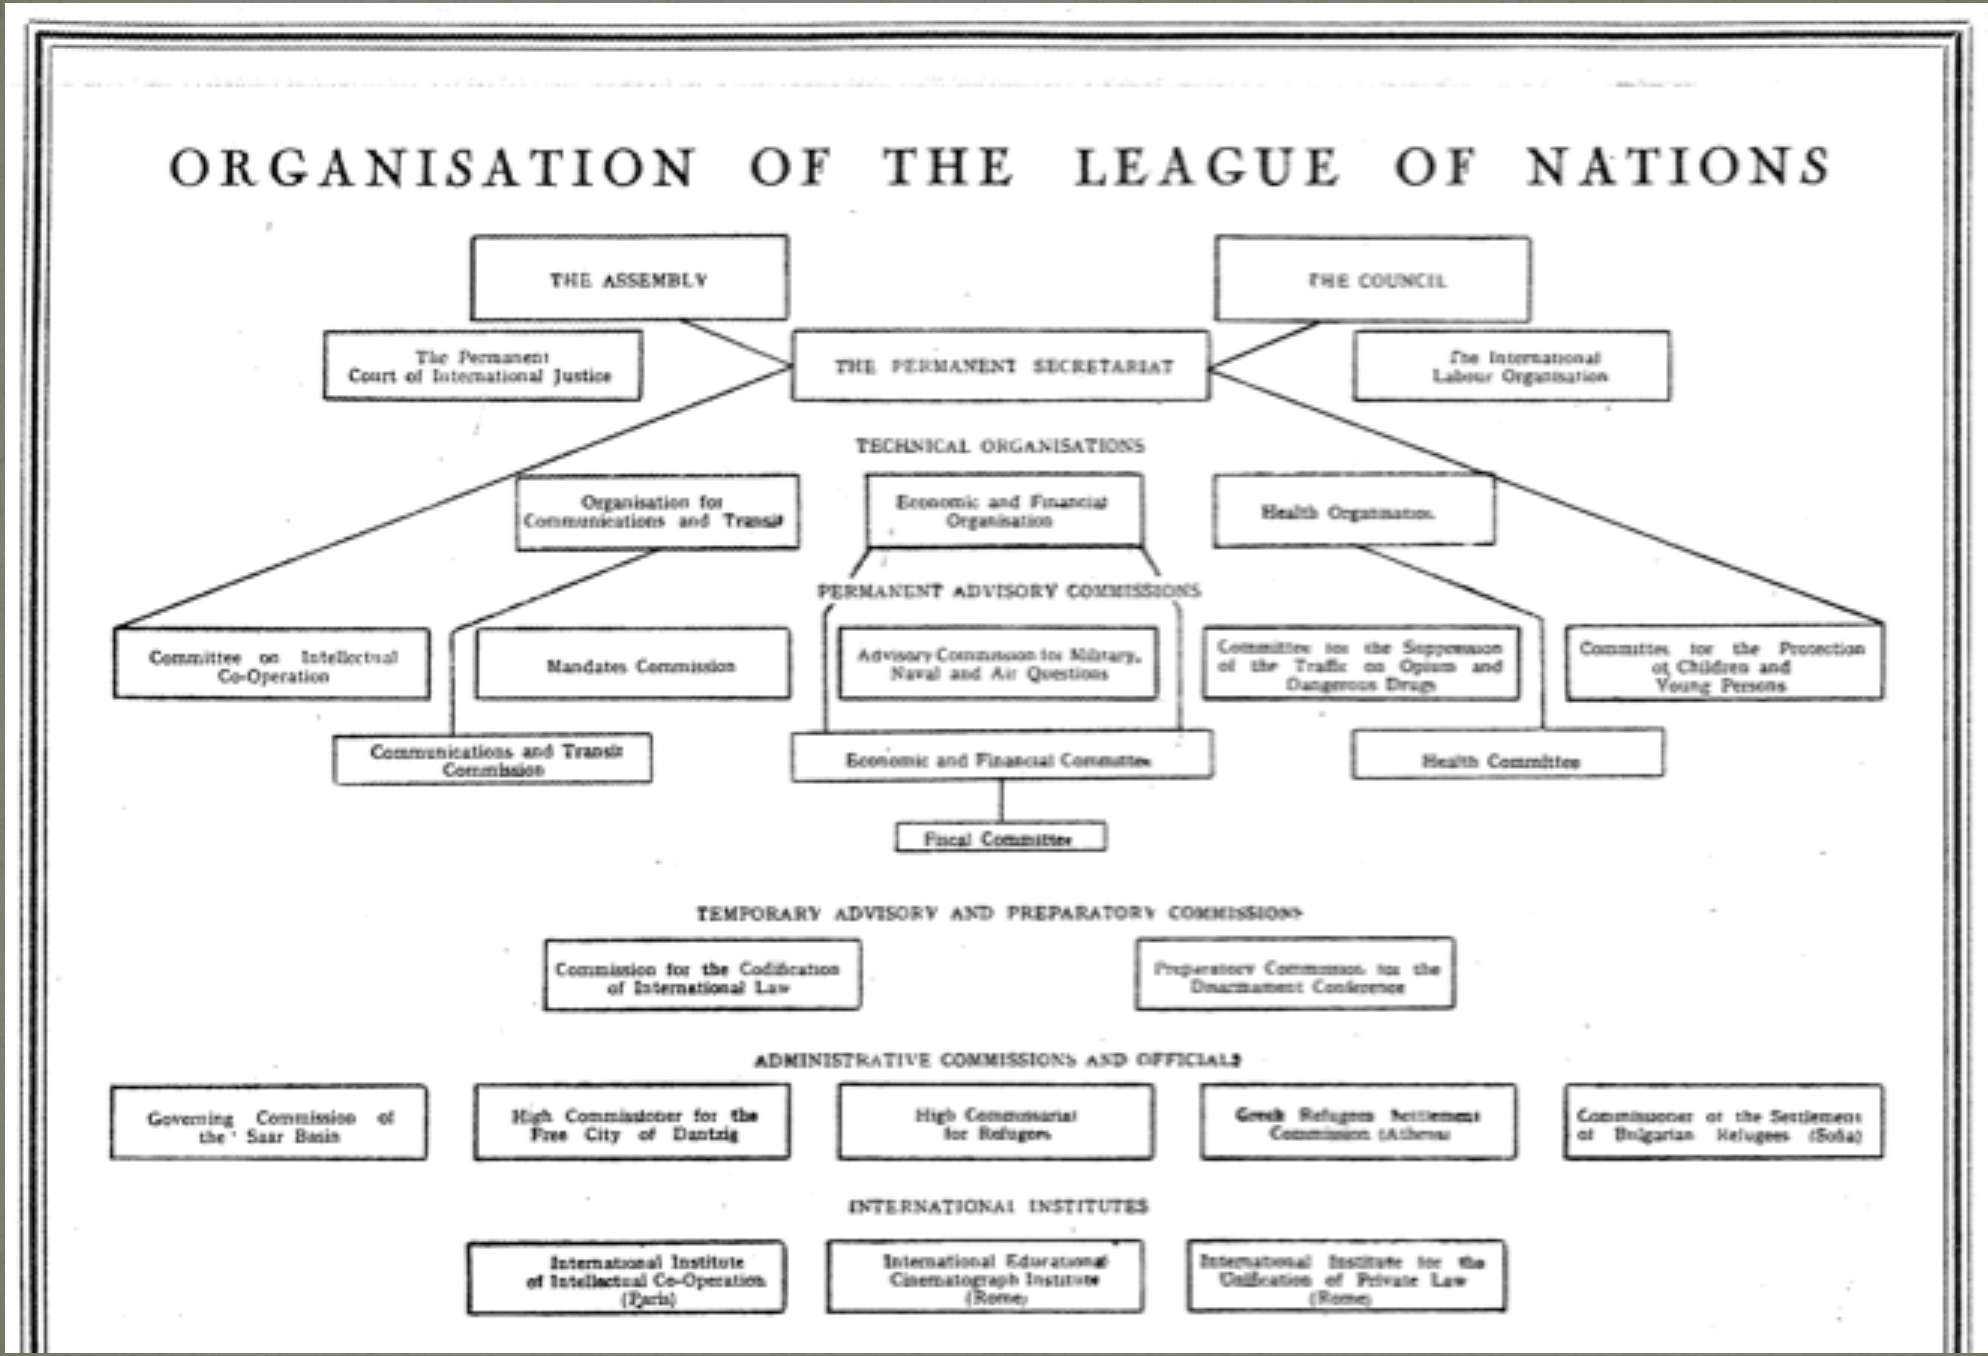 league of nations structure - photo #9